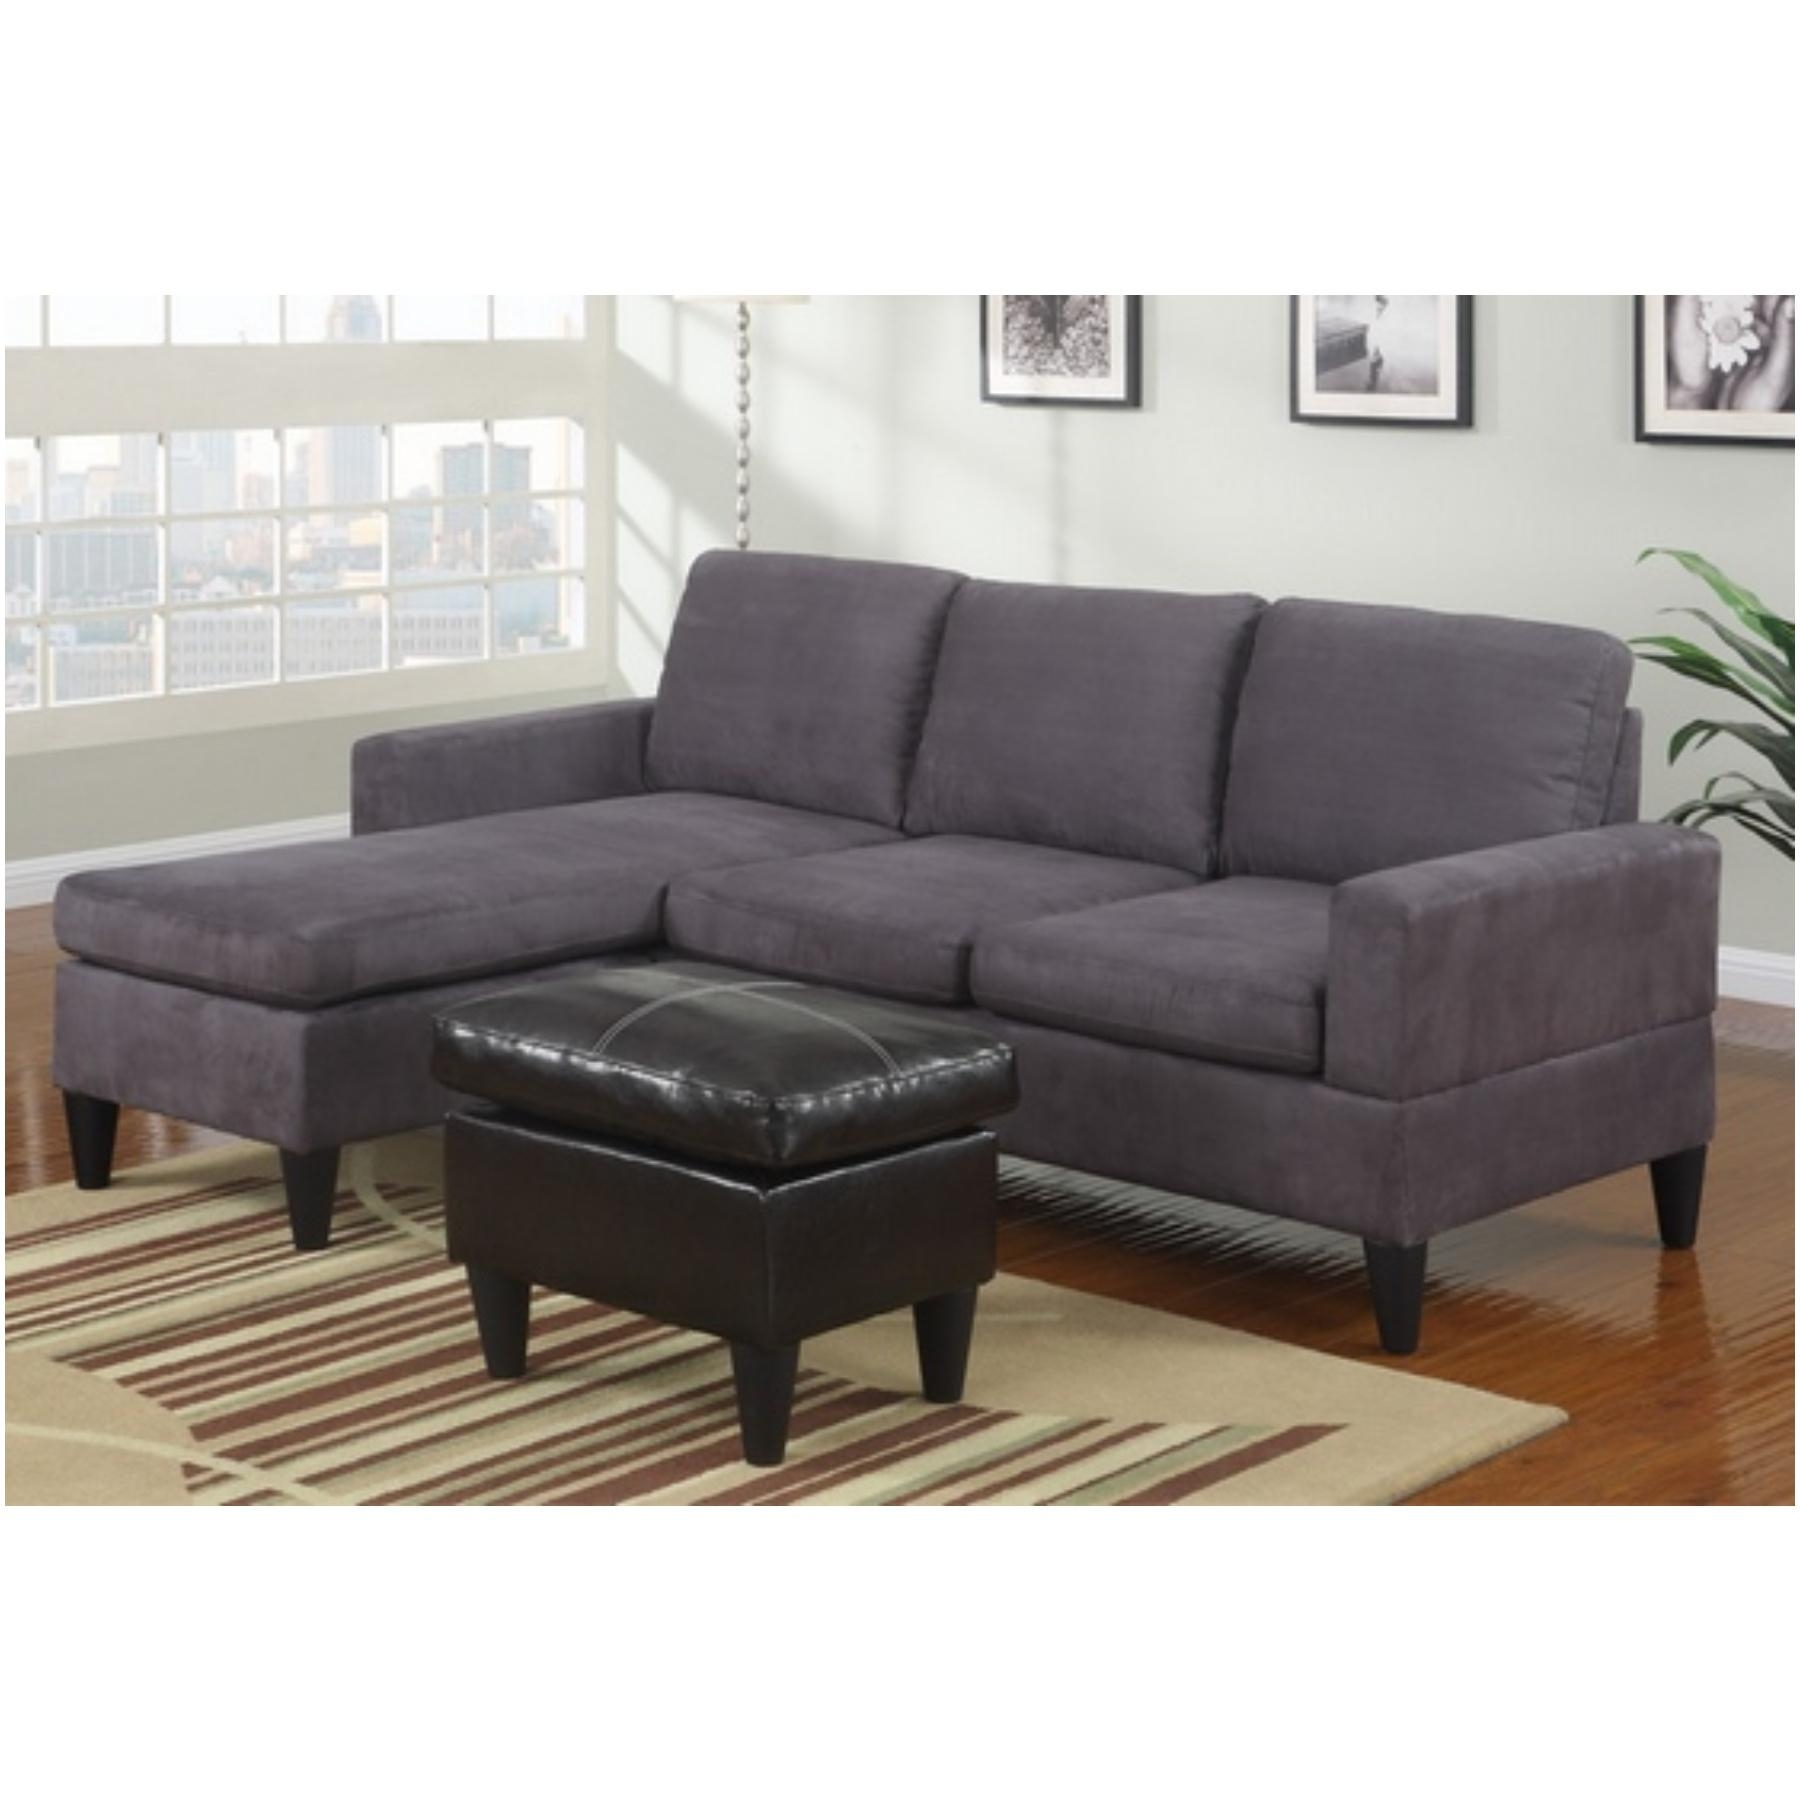 Apartment Size Sectional Sofa With Chaise | Tehranmix Decoration In Apartment Sectional (Image 7 of 15)